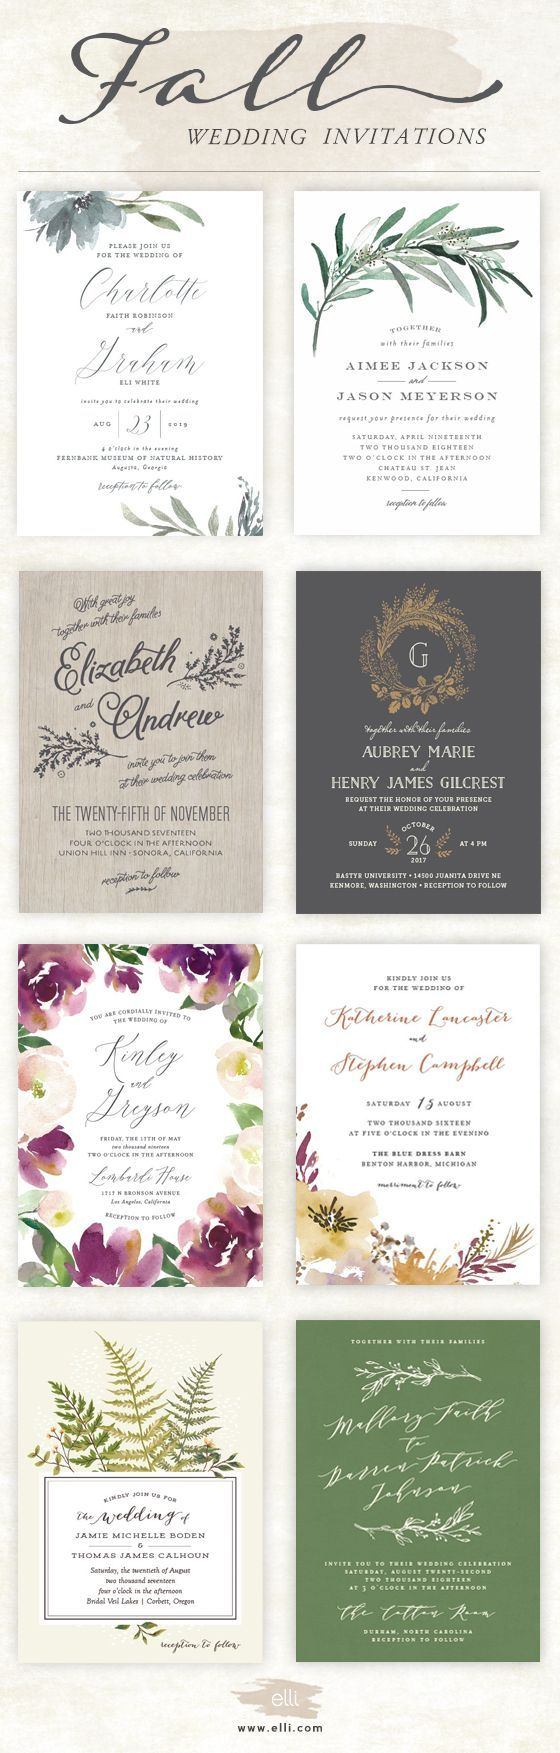 luau wedding invitation templates%0A Top wedding invitations for Fall  Click here to see more stunning fall  designs